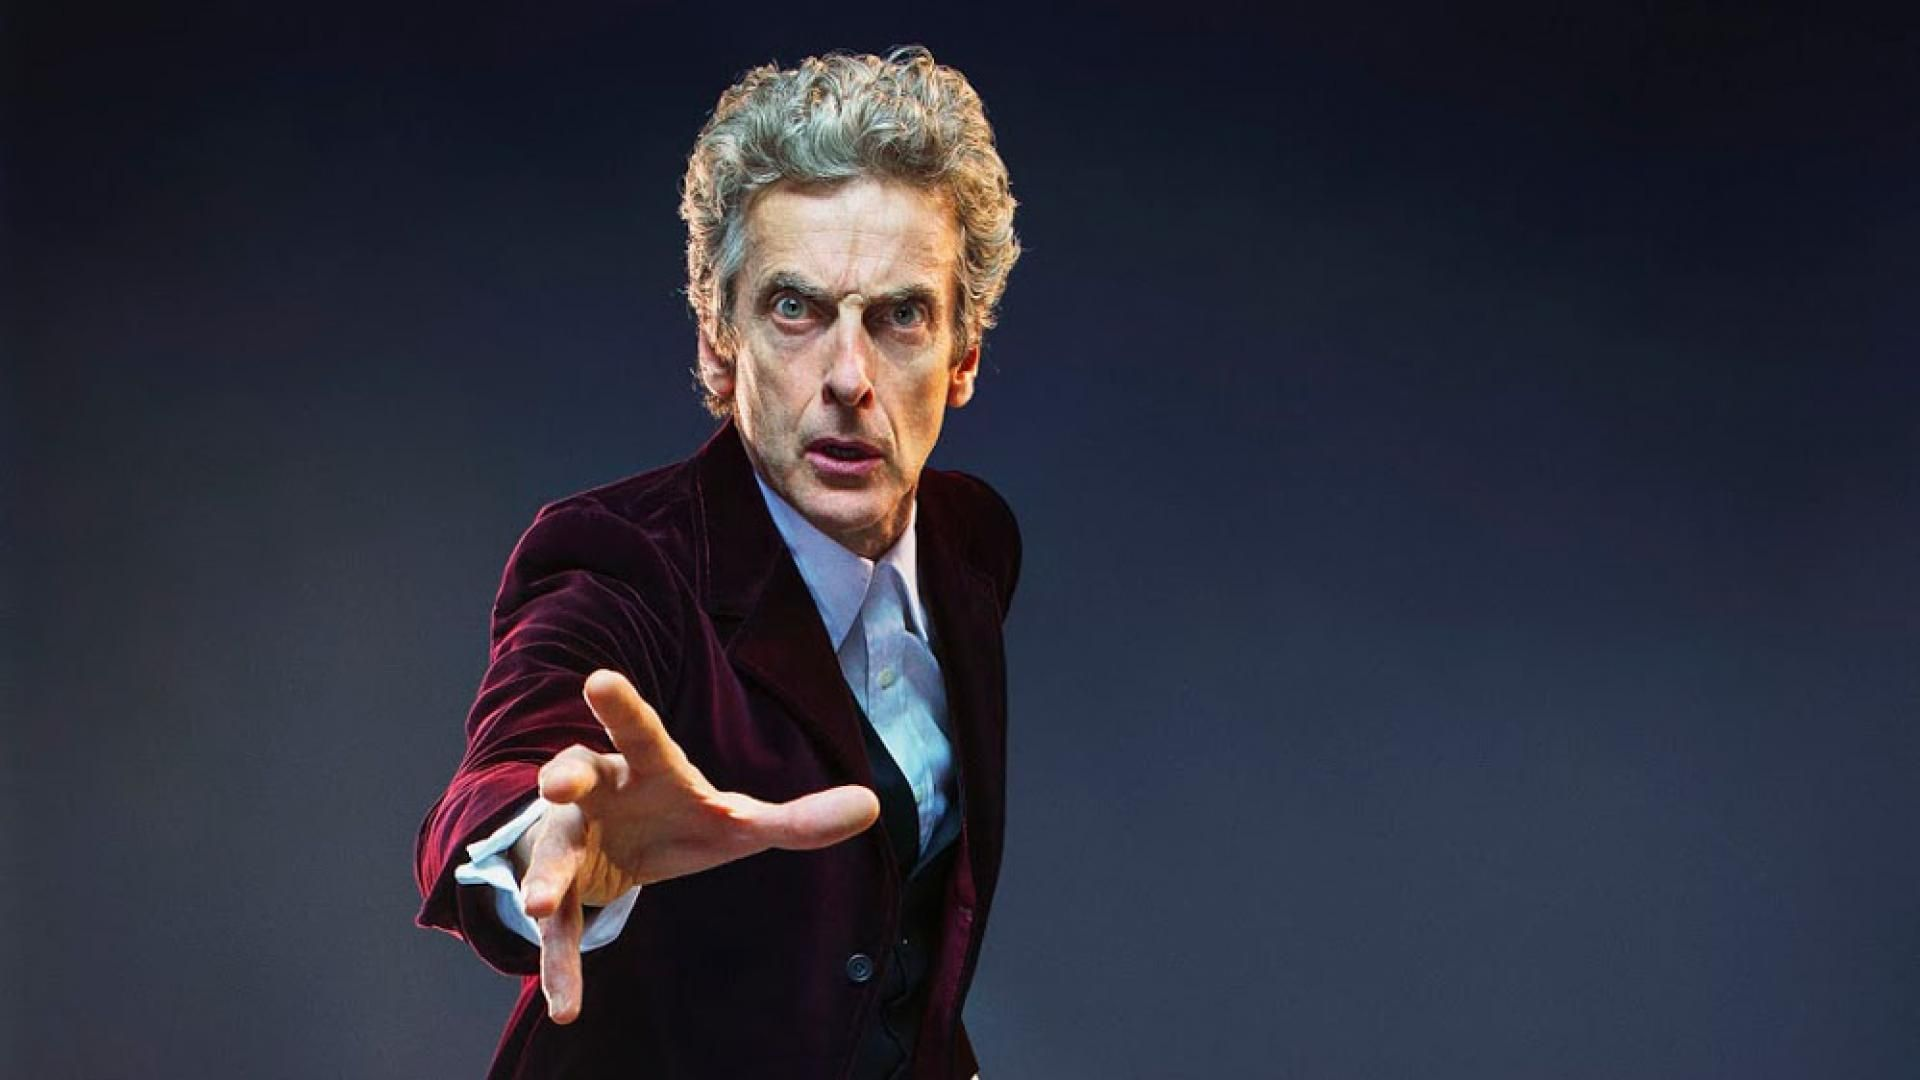 Doctor Who Season 10 Wallpapers Top Free Doctor Who Season 10